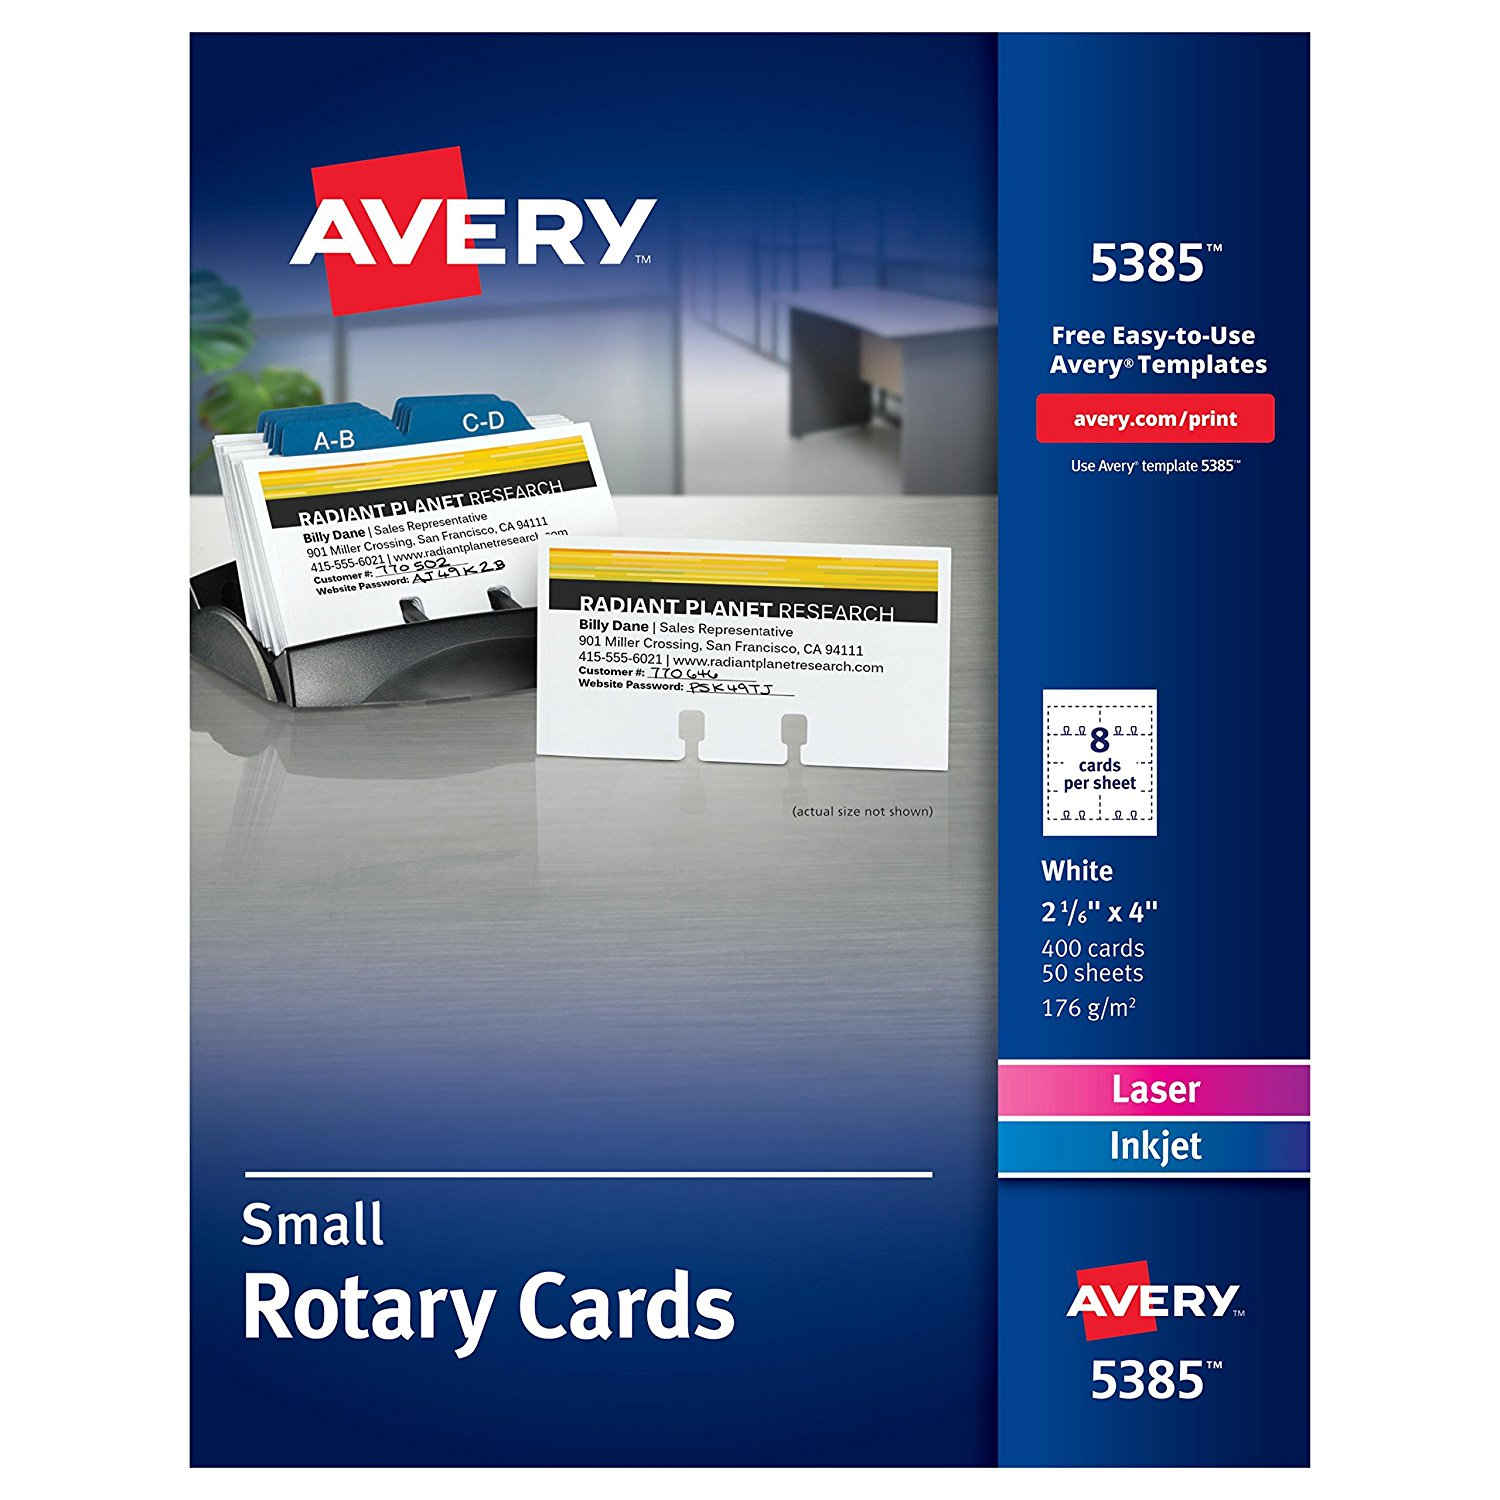 "Laser Rotary Cards, 2 1/6in."" x 4in., Box of 400 Cards (5385), Laser/Ink Jet Rotary Cards. Heavyweight card stock sheets feed automatically from paper tray..., By Avery"